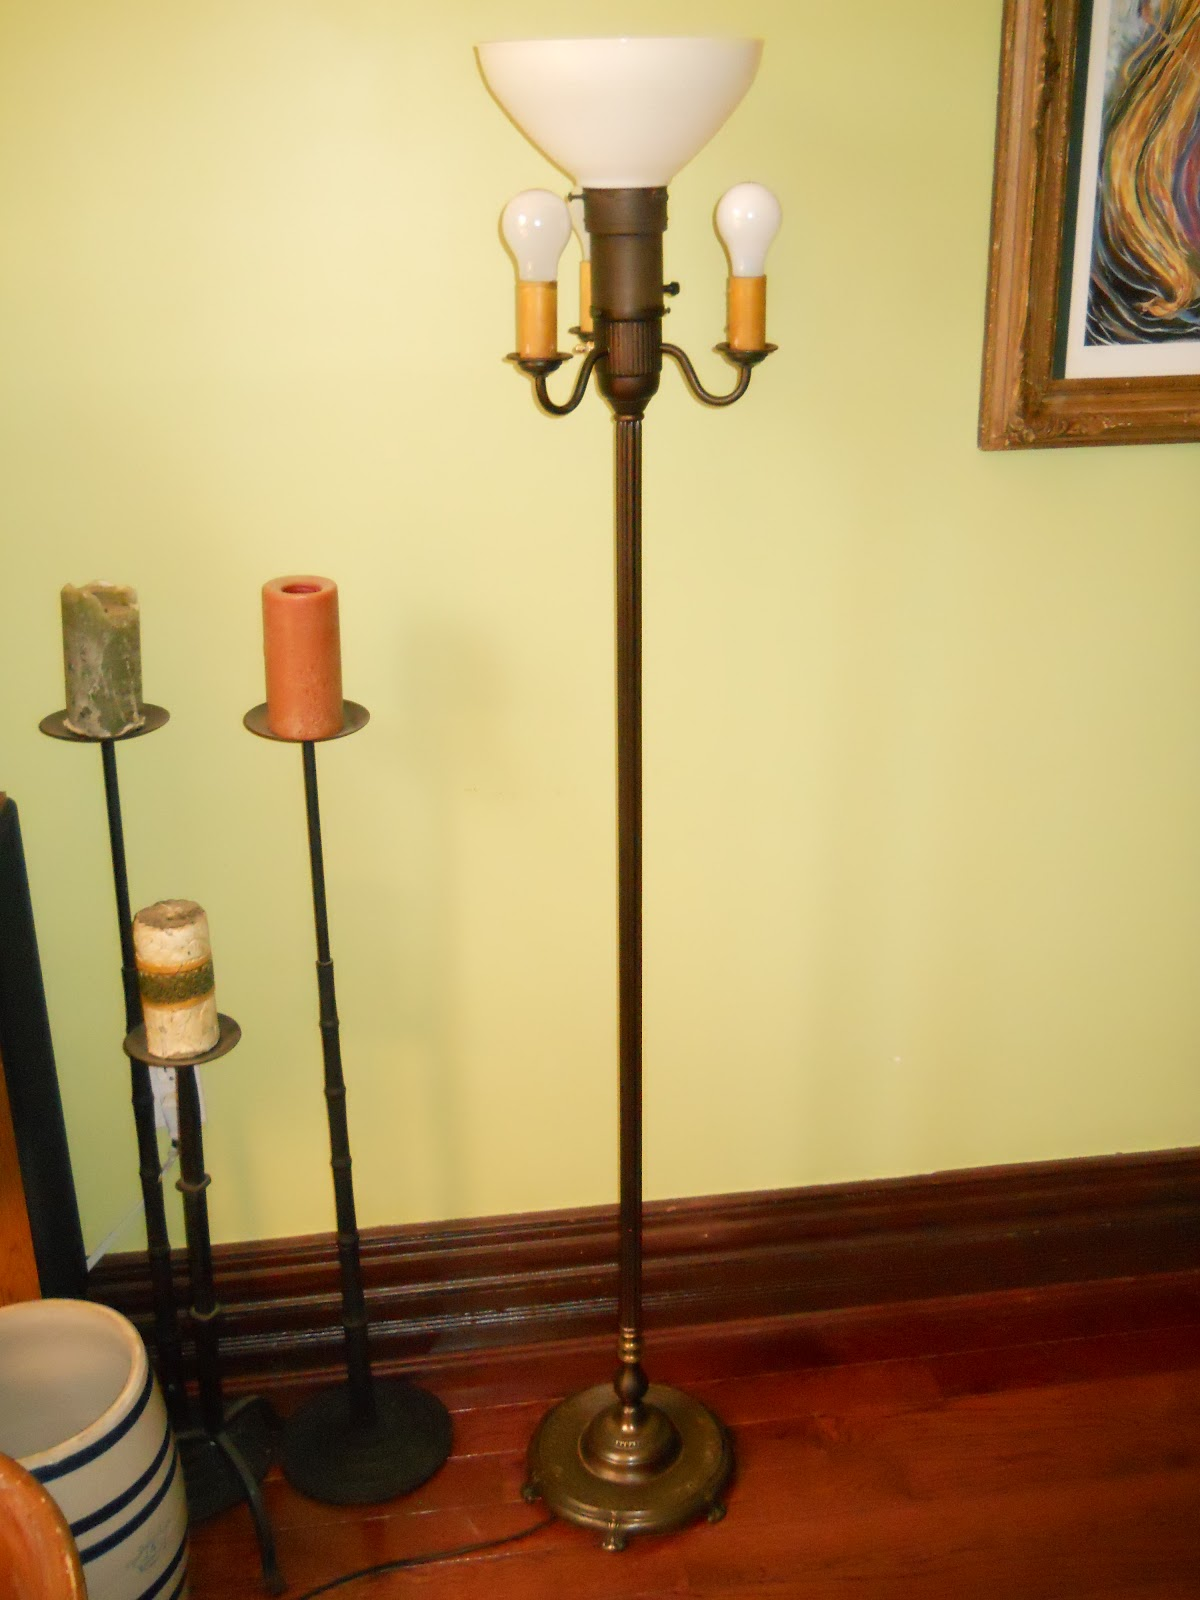 Brilliant Church Key Vintage Pairpoint Dolphin Lamp Antique Floor Lamp Wiring 101 Capemaxxcnl